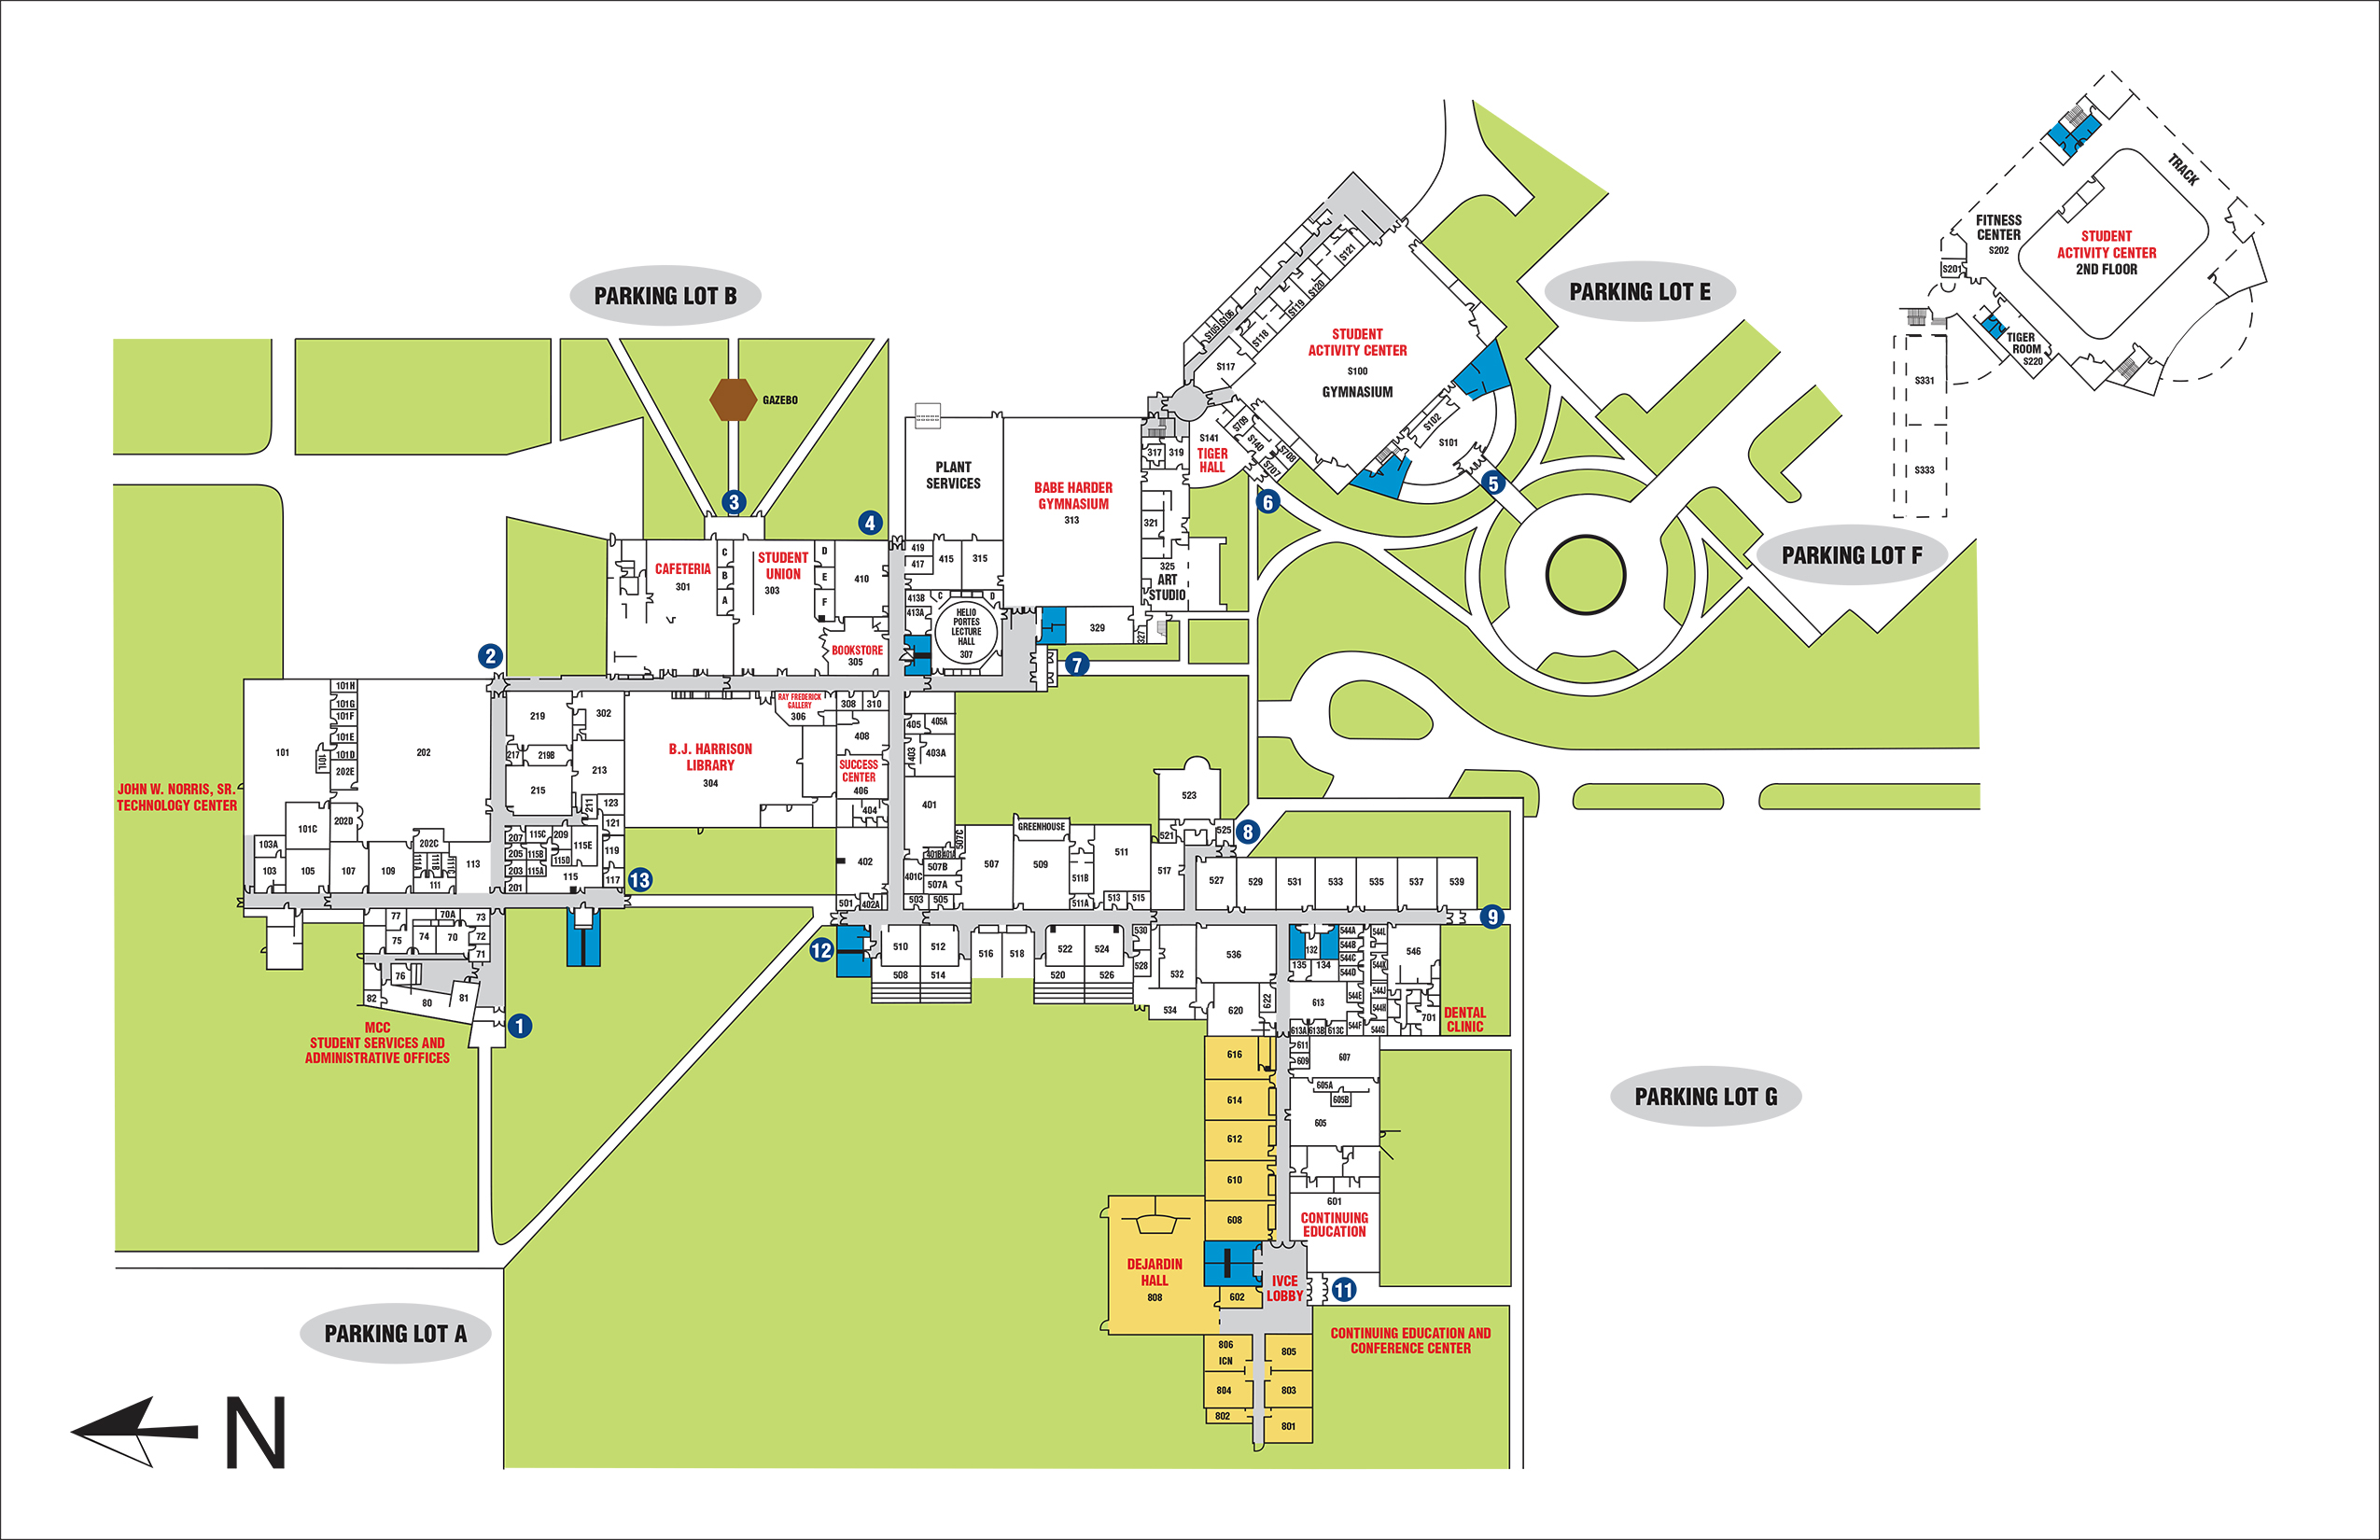 Mcc Campus Map | My Blog